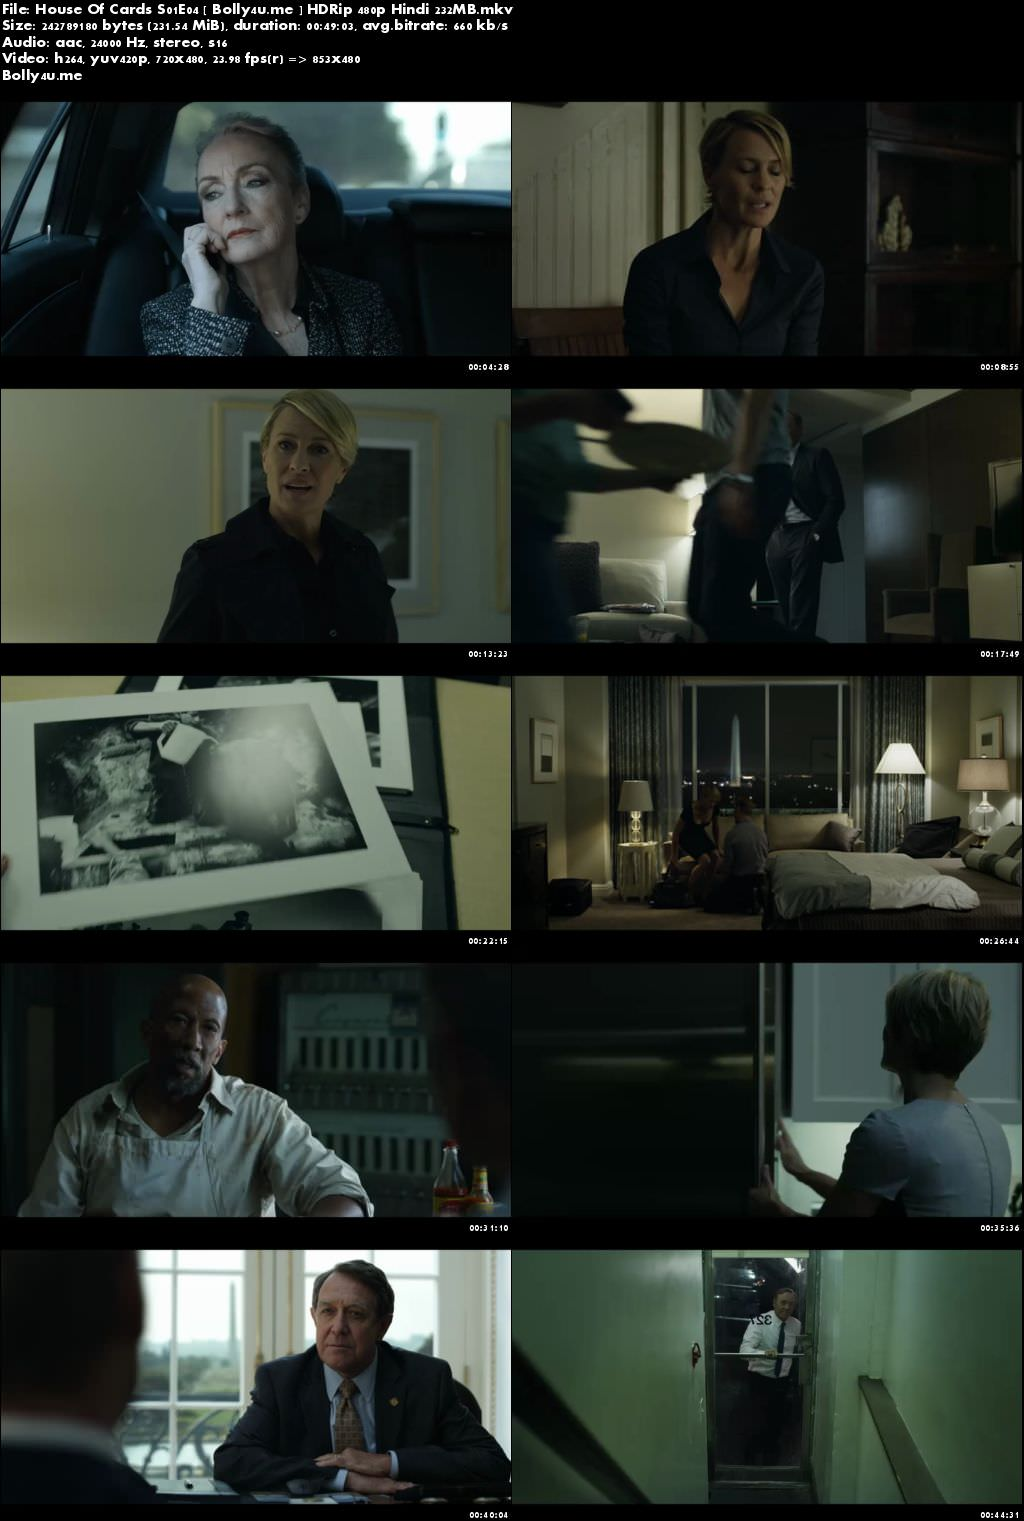 House Of Cards S01E04 HDRip 200MB Hindi Dubbed 720p Download